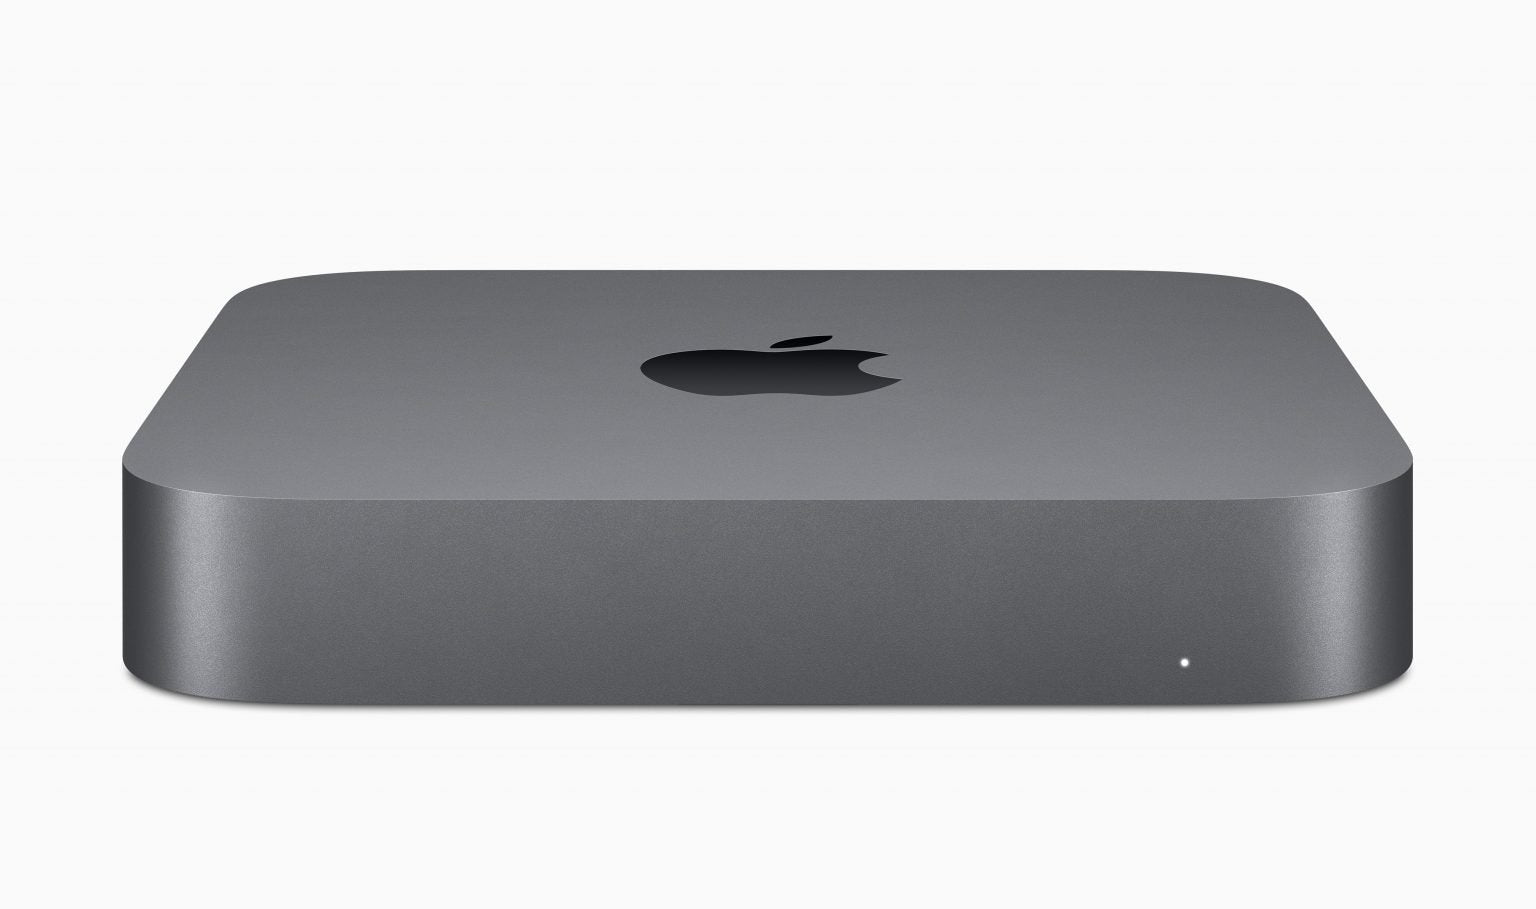 The new iMac and Mac mini will be released soon